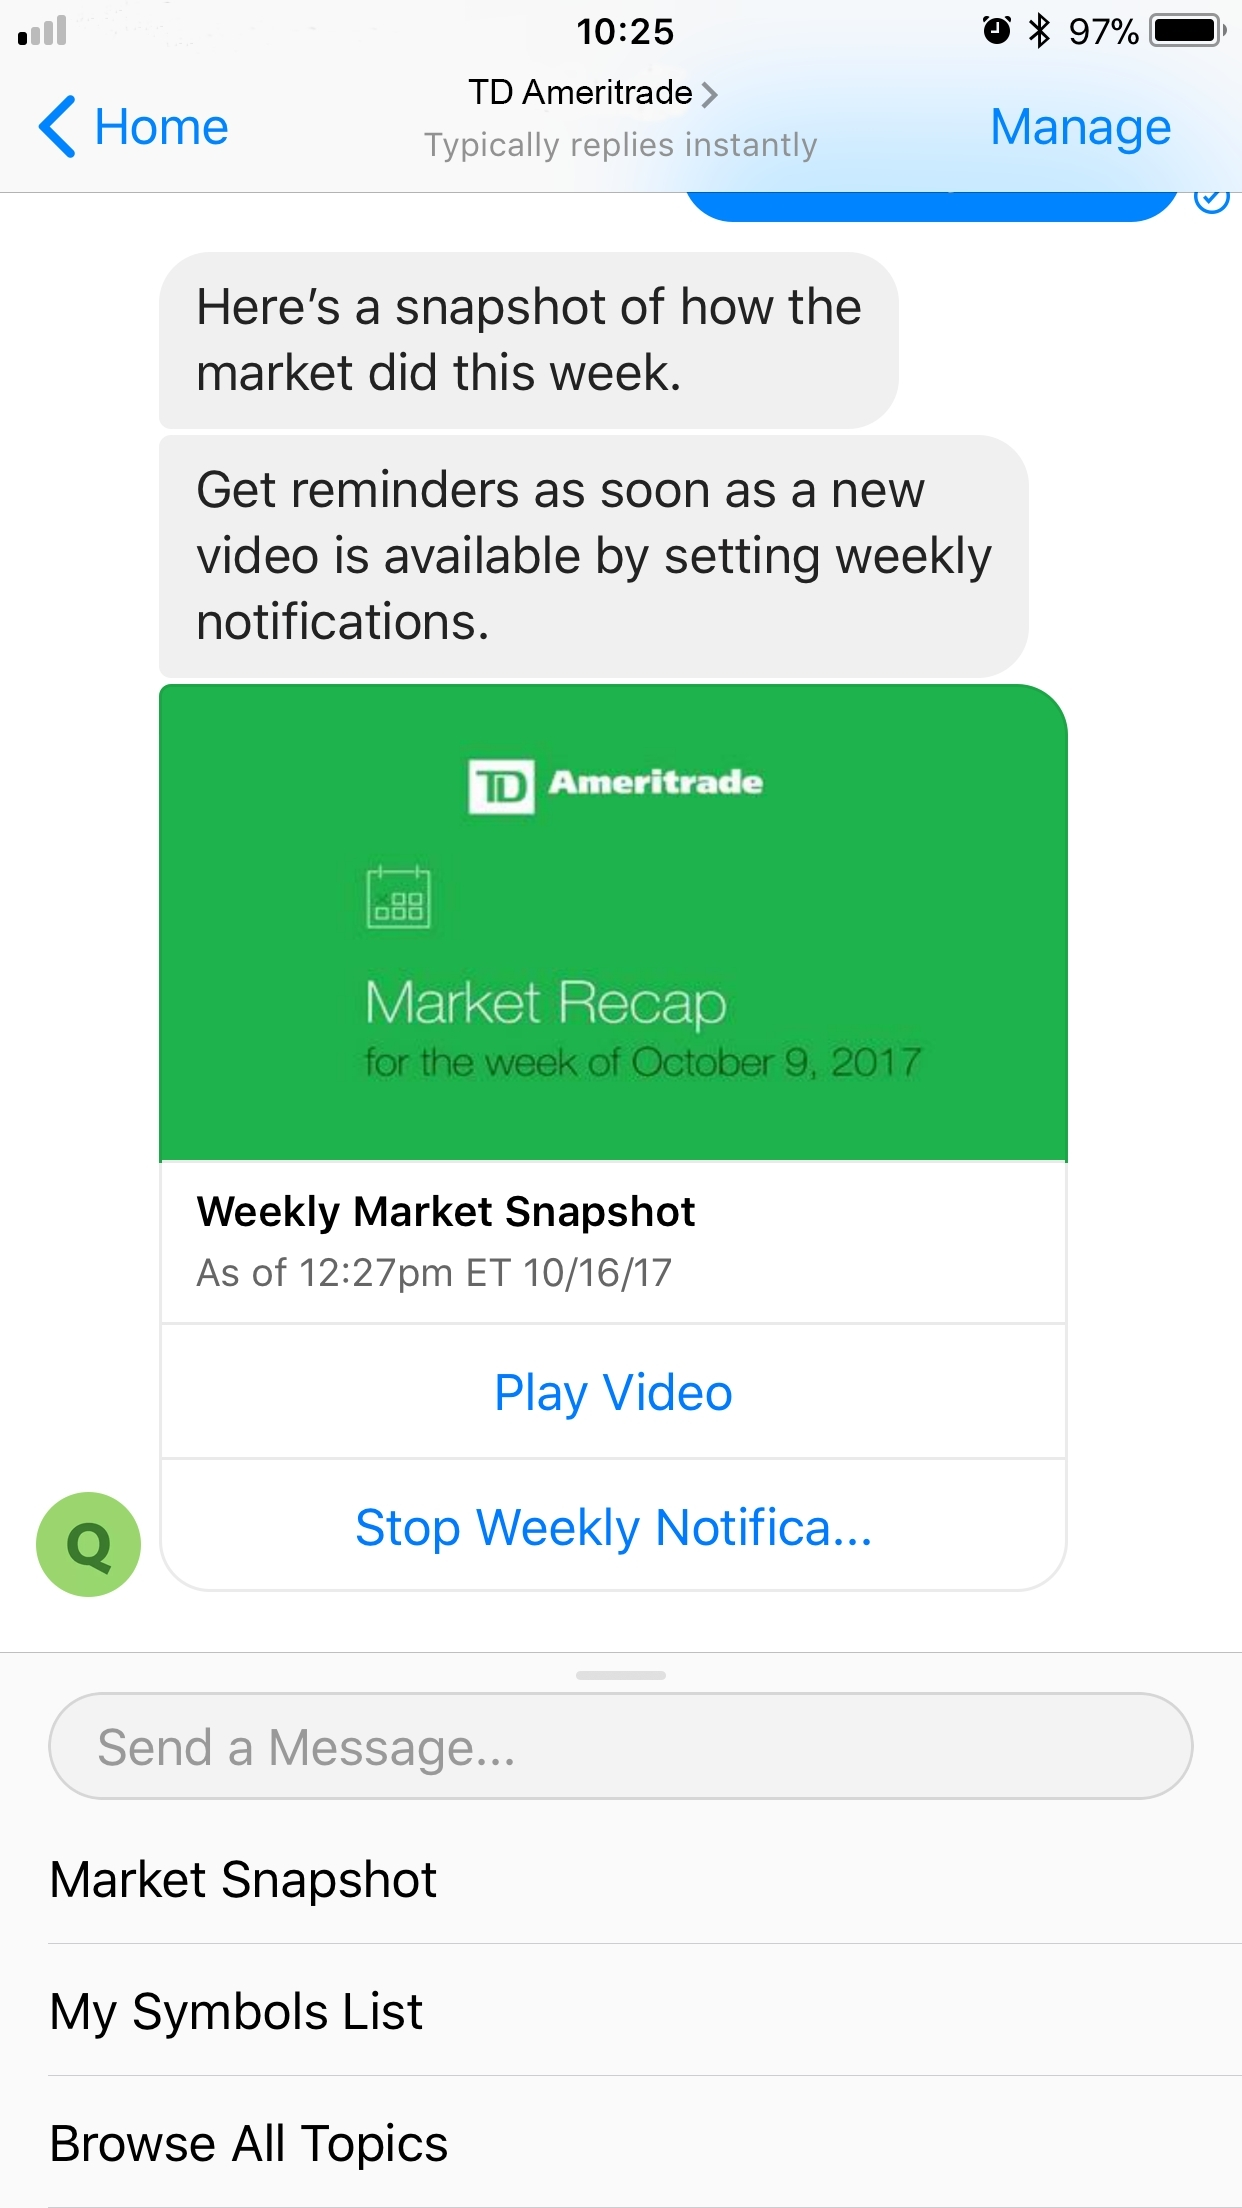 TD Ameritrade Enables Trading Through Messenger | Business Wire